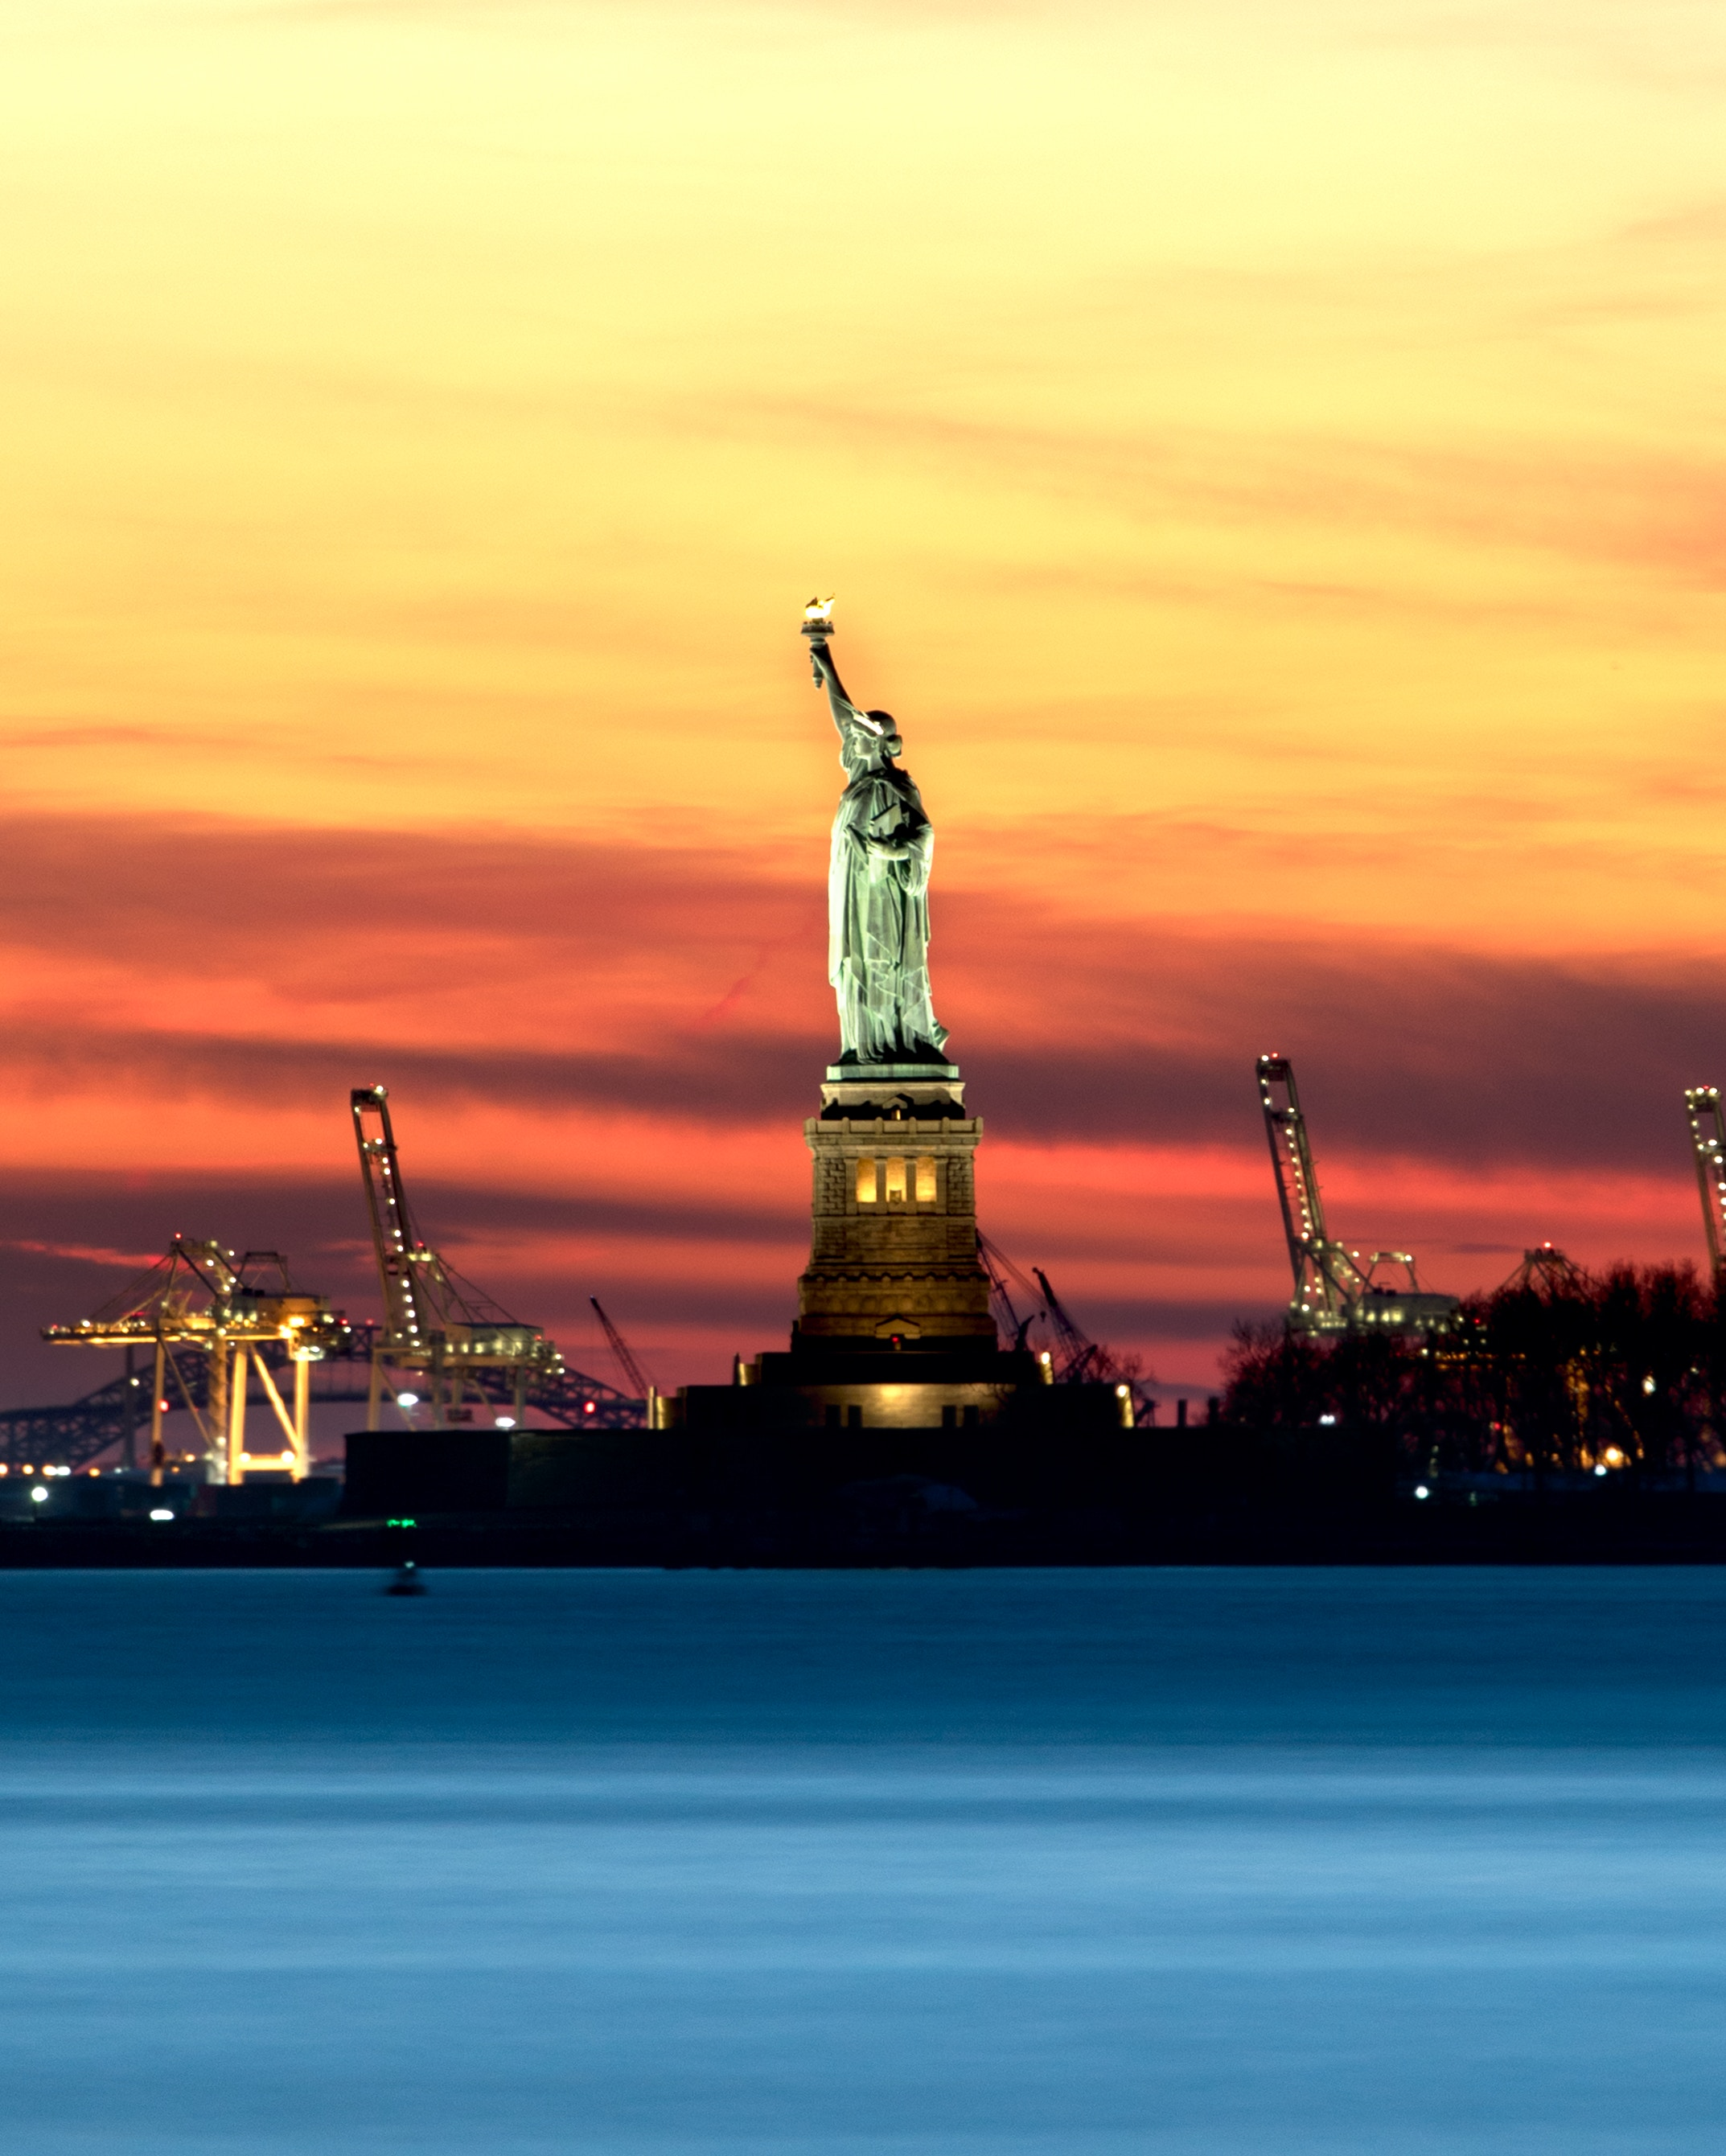 election jobs portrait of the Statue of Liberty in sunset